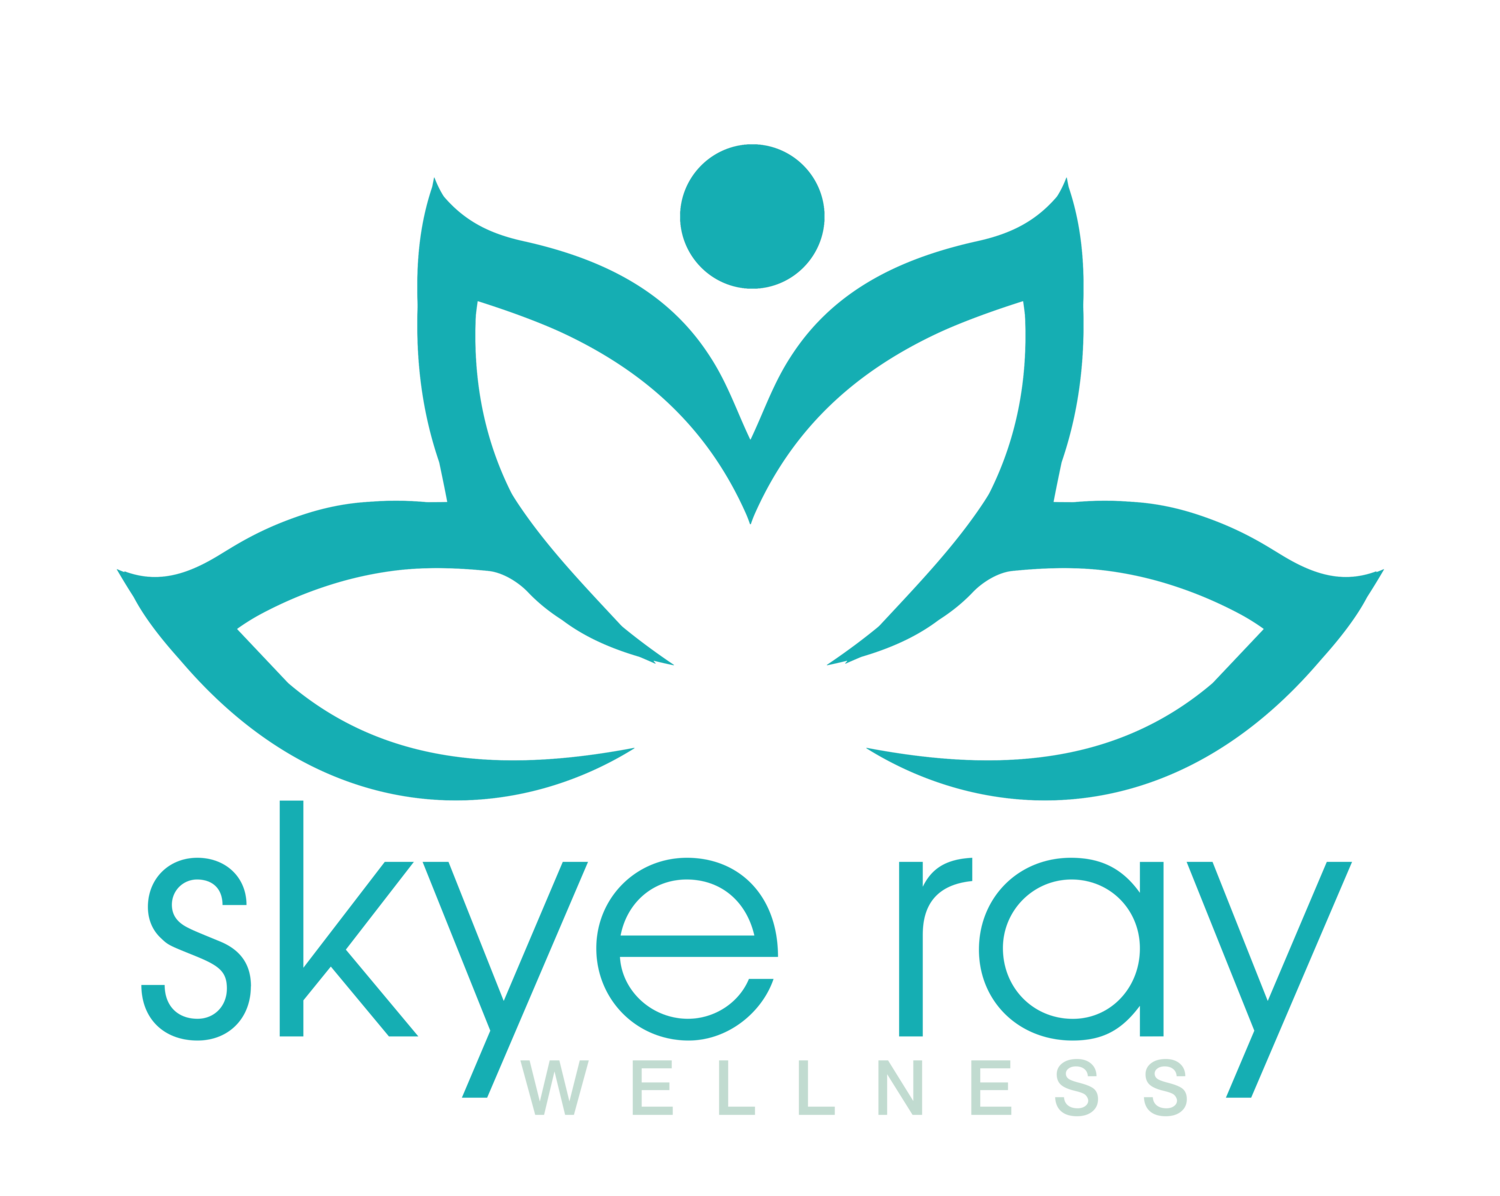 SKYE  RAY WELLNESS